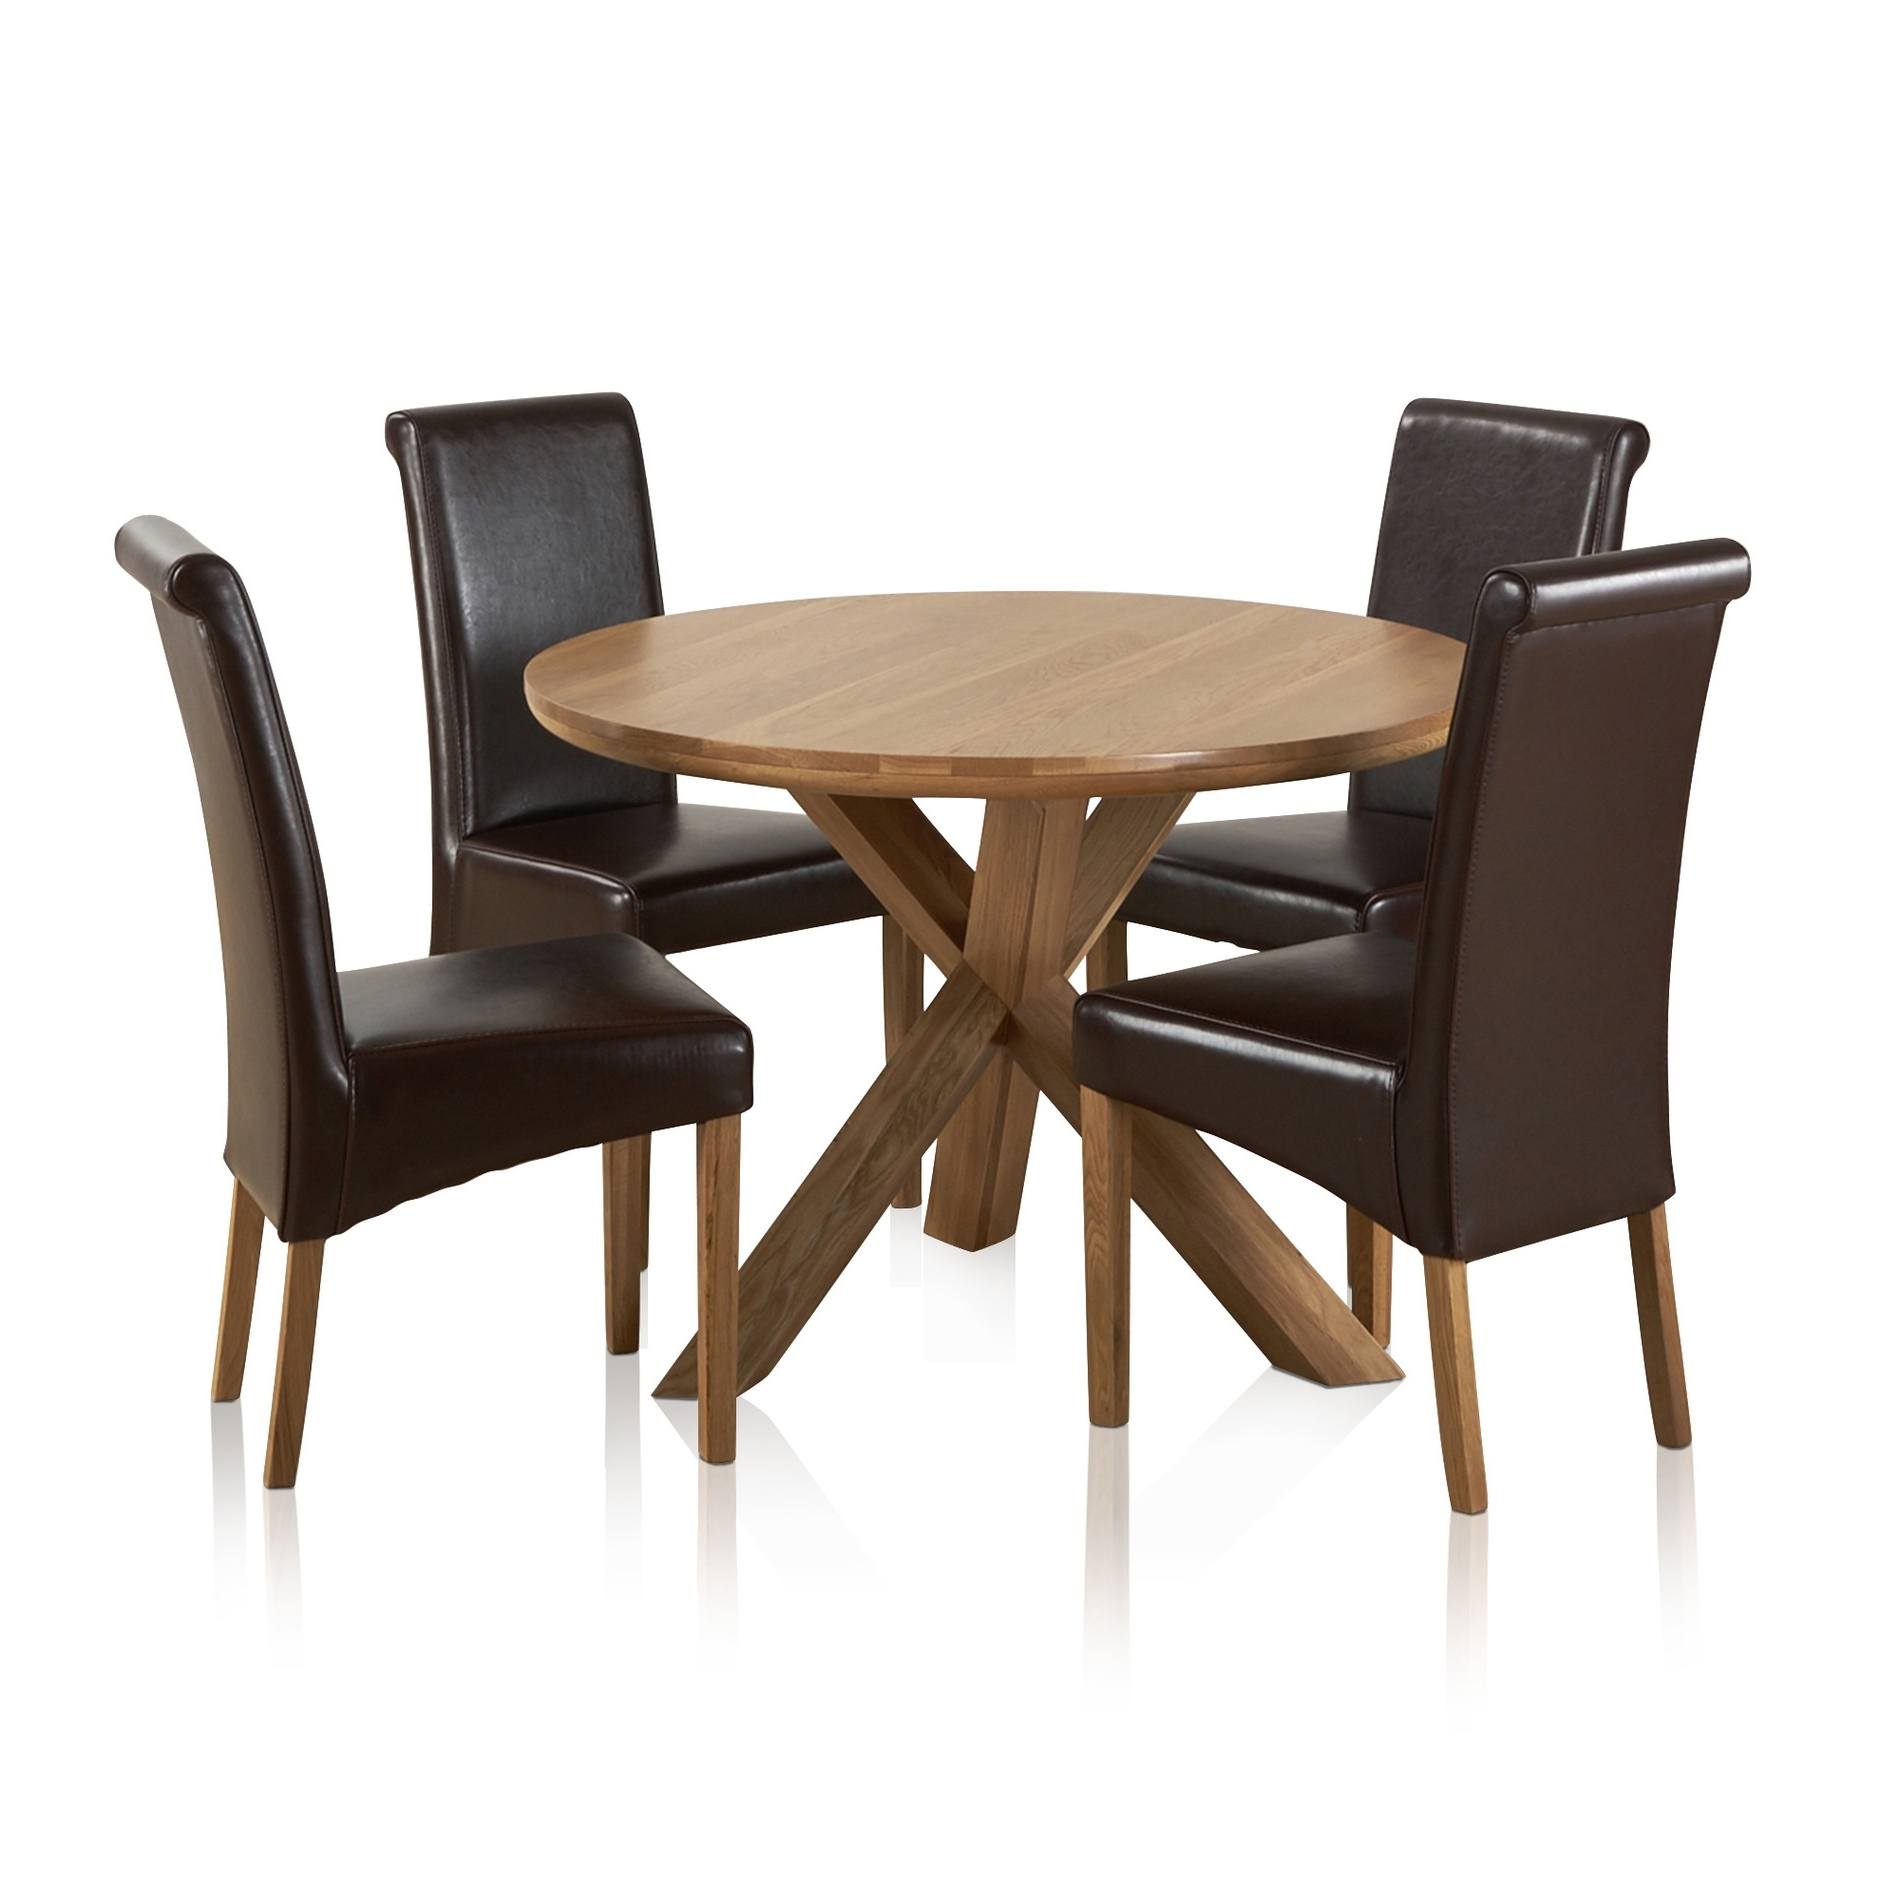 Cheap Oak Dining Sets Intended For Recent Natural Real Oak Dining Set: Round Table + 4 Brown Leather Chairs (Gallery 21 of 25)